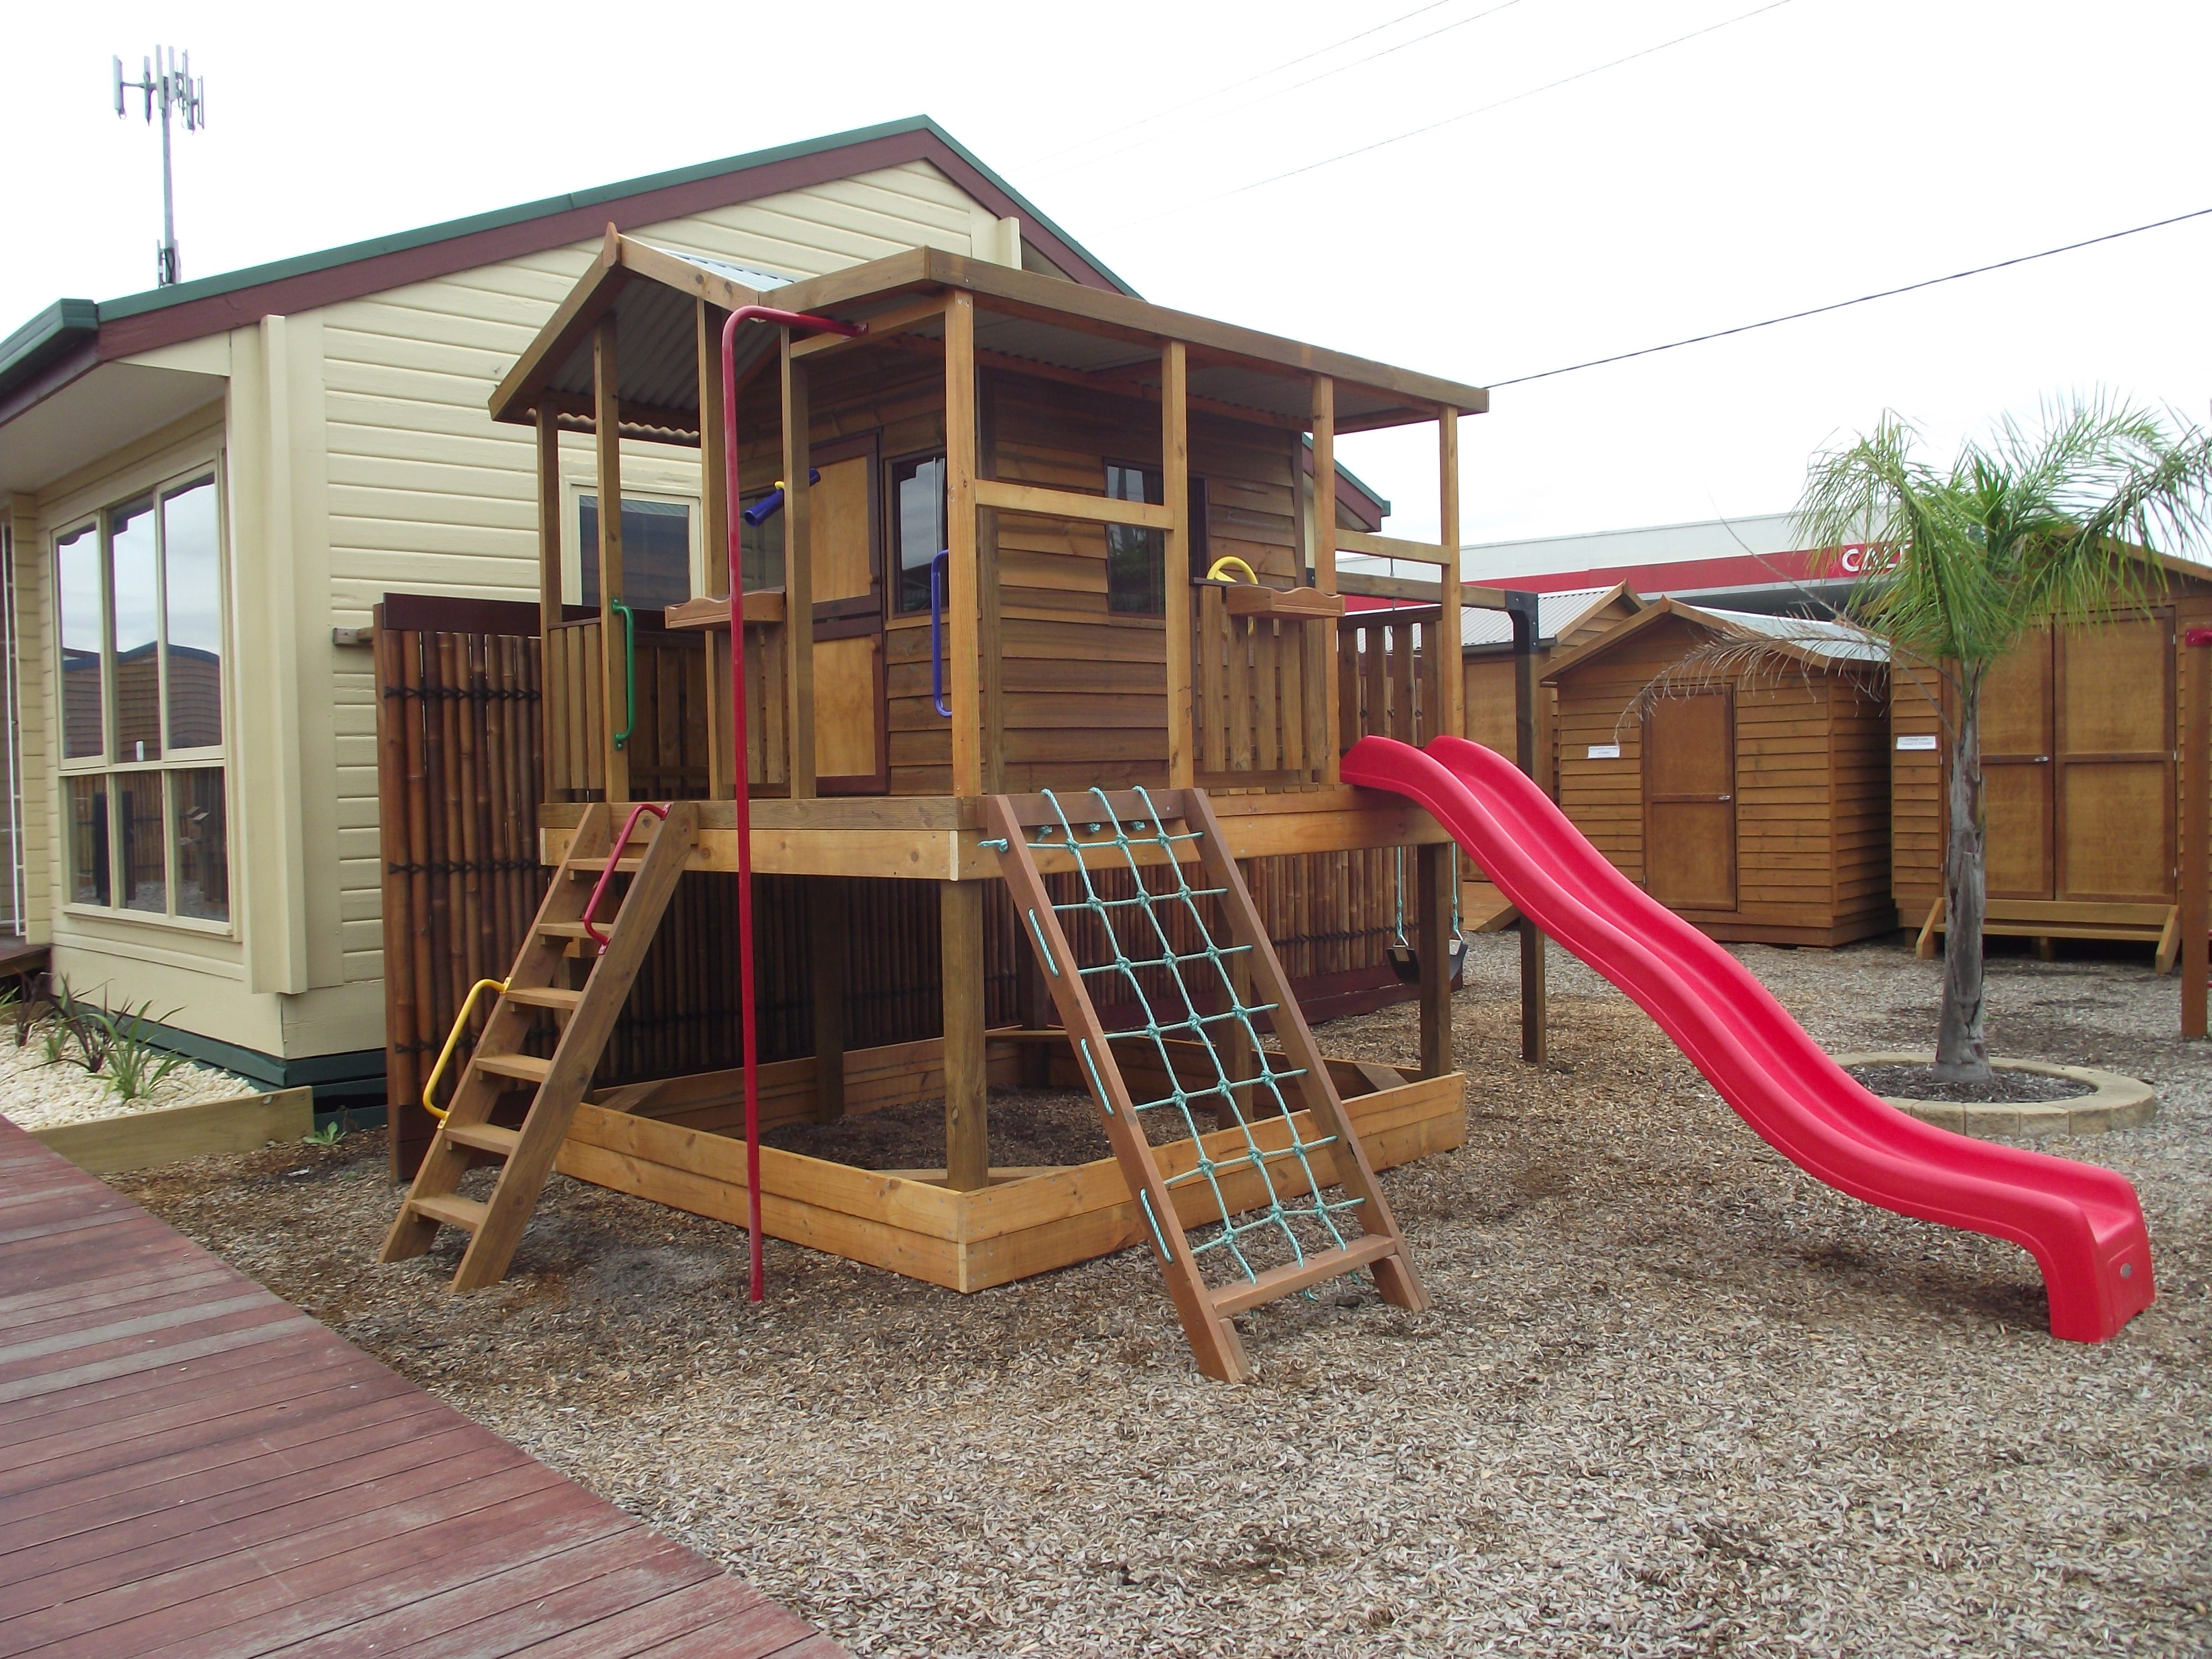 Cubby Houses by Matt's Homes and Outdoor Designs. Located